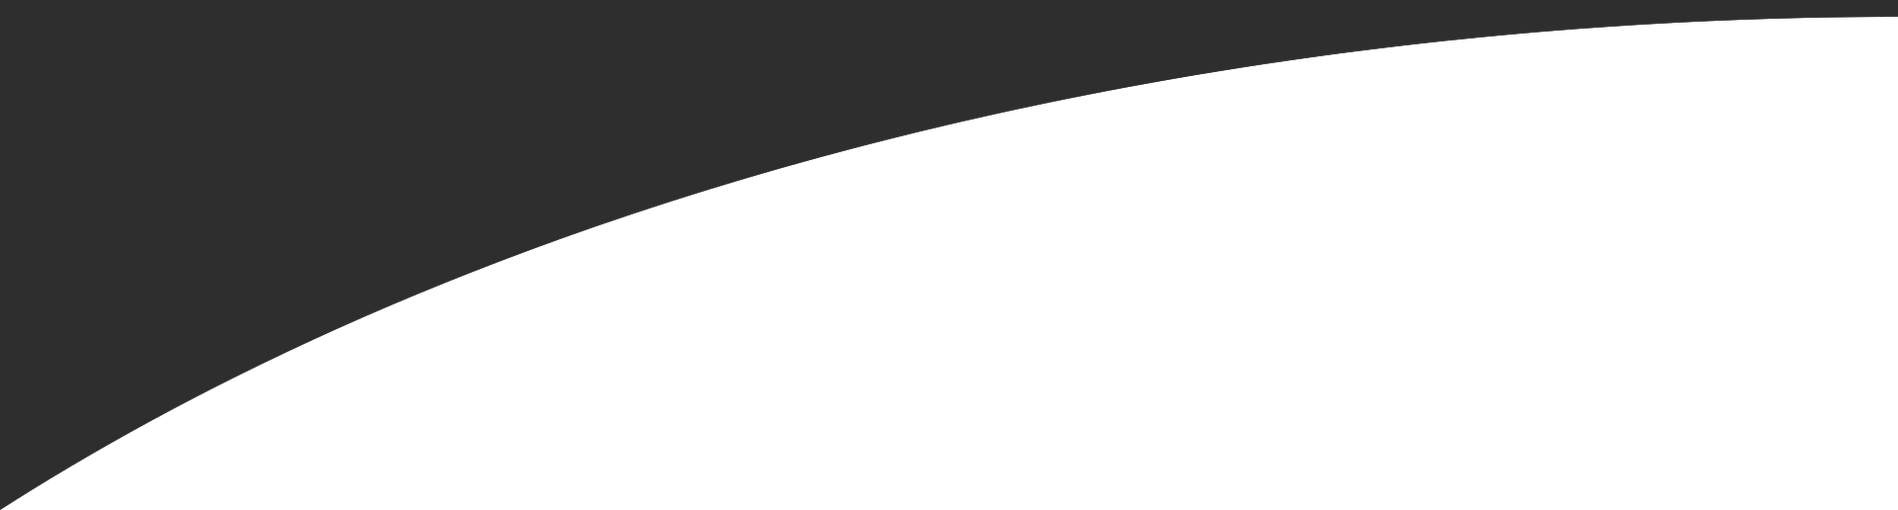 WAKSTER_Animationt_Curve_Gallery.png